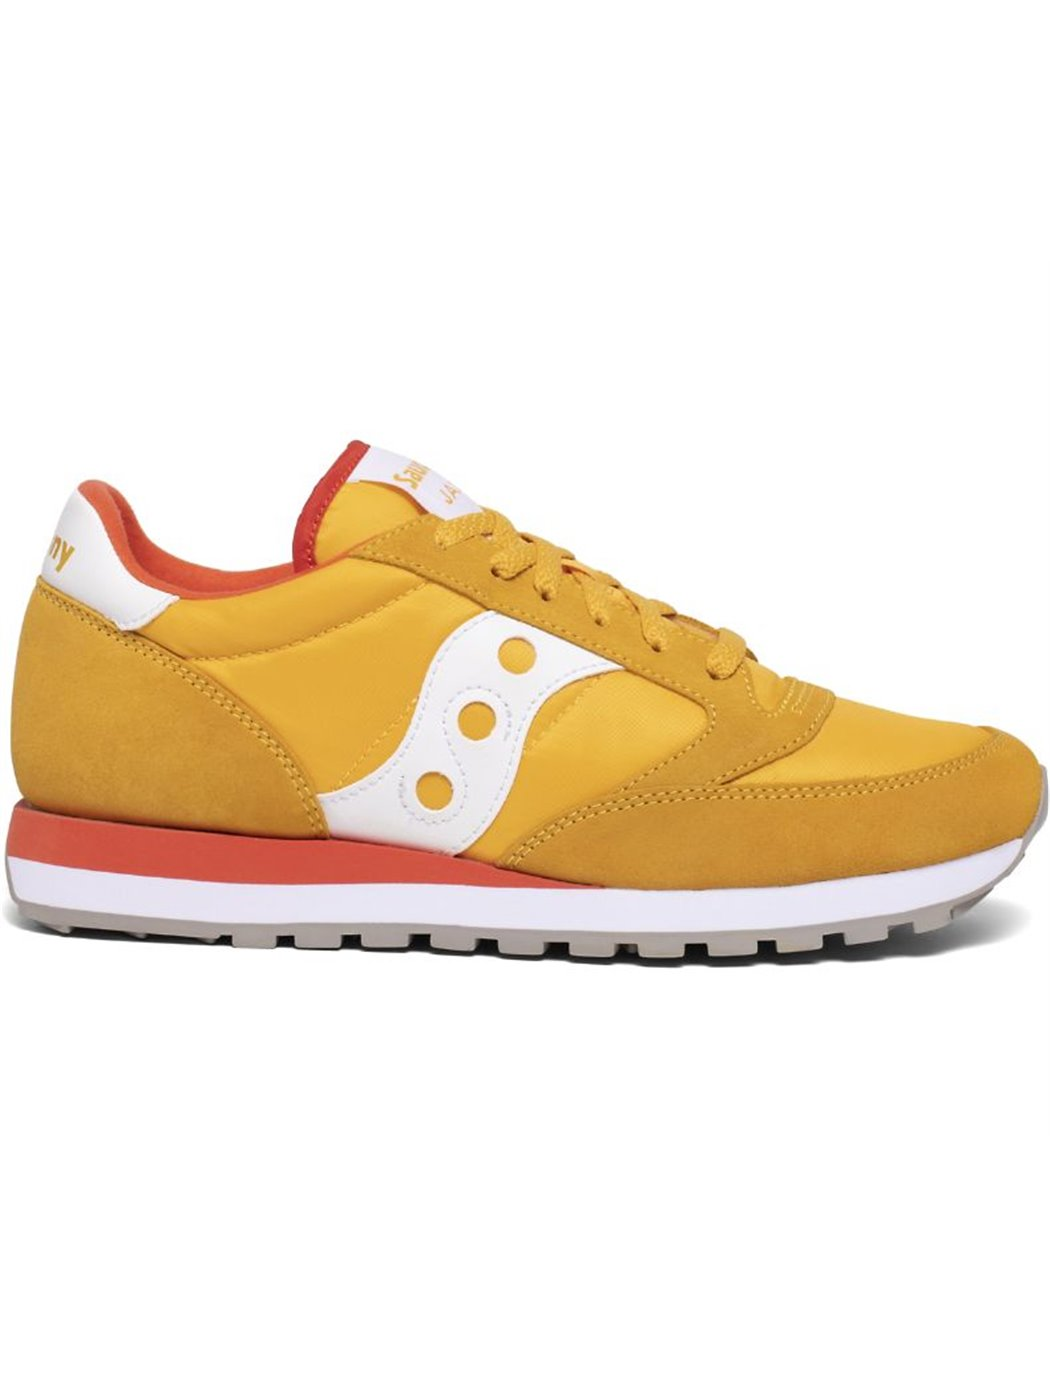 SAUCONY 2044-555 GOLD-RED SNEAKERS